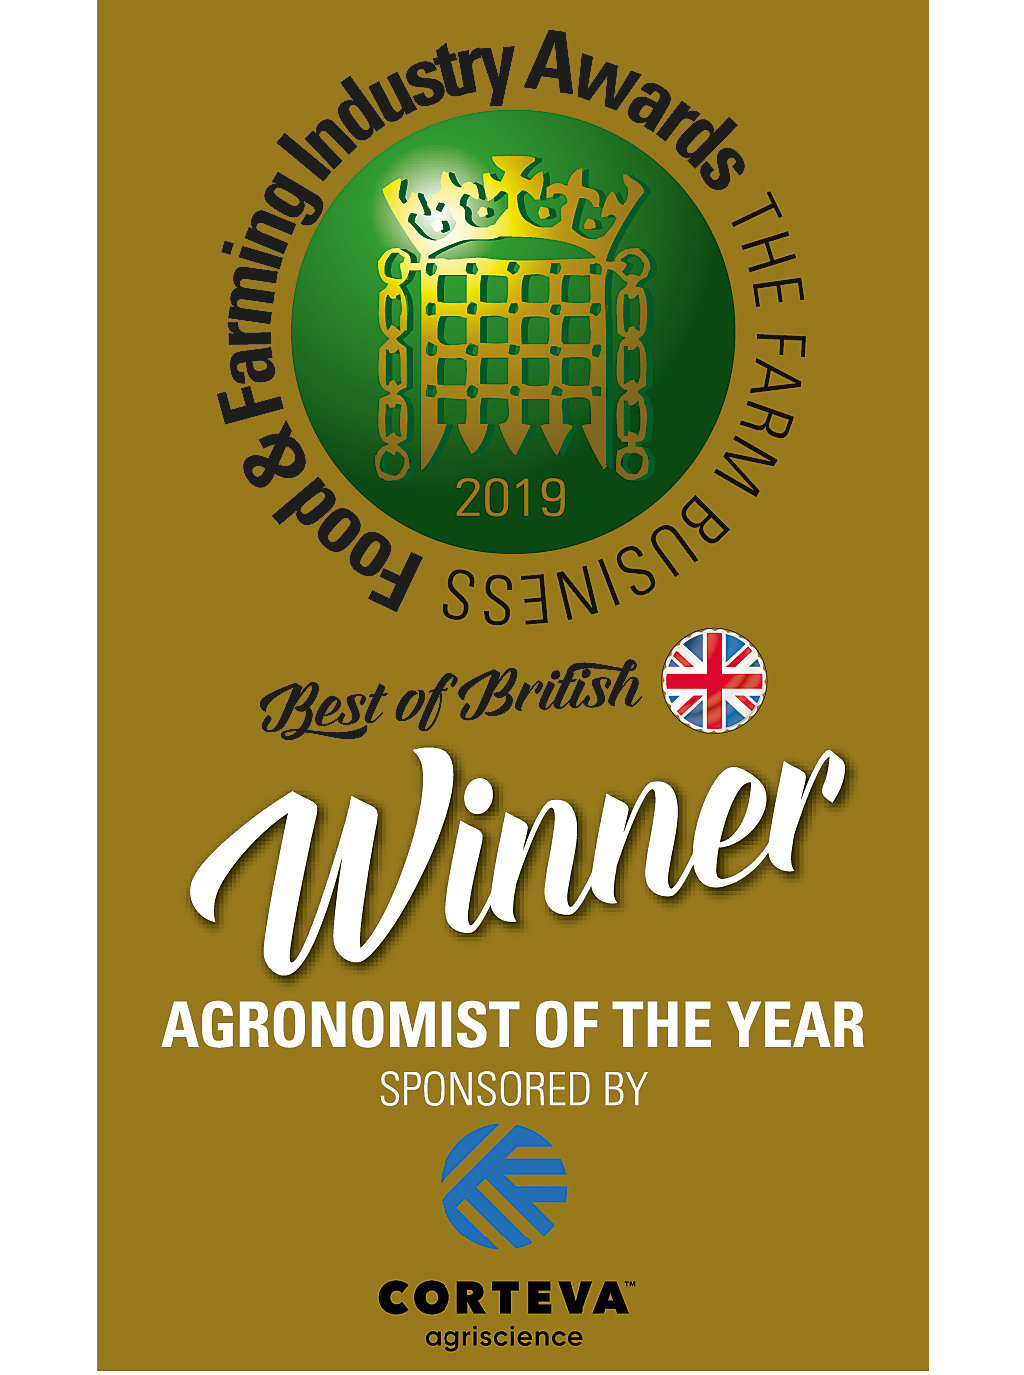 Agronomist of the year